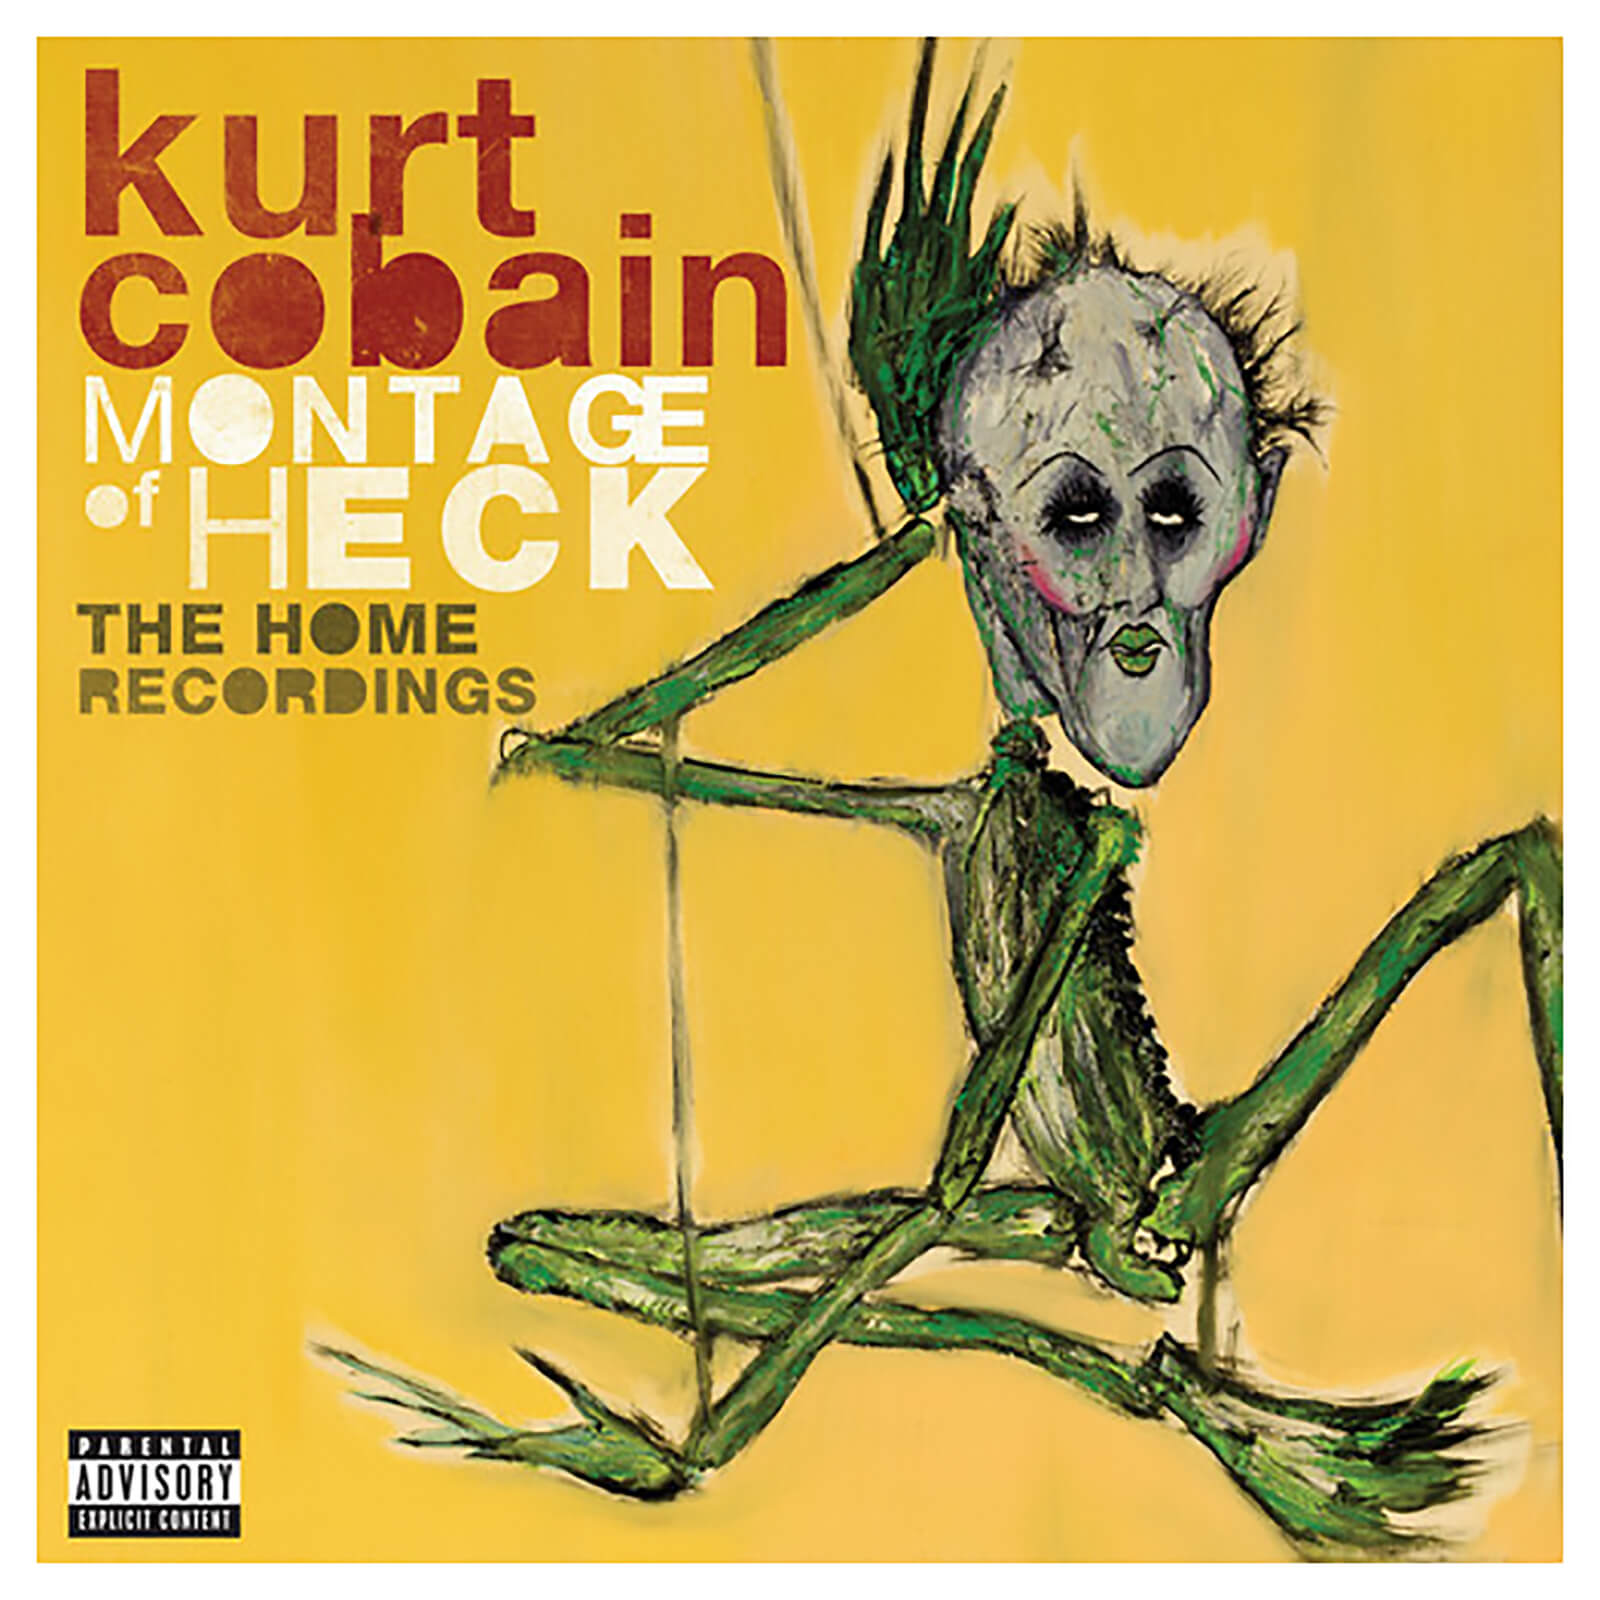 Kurt Cobain - Montage Of Heck: The Home Recordings - Vinyl